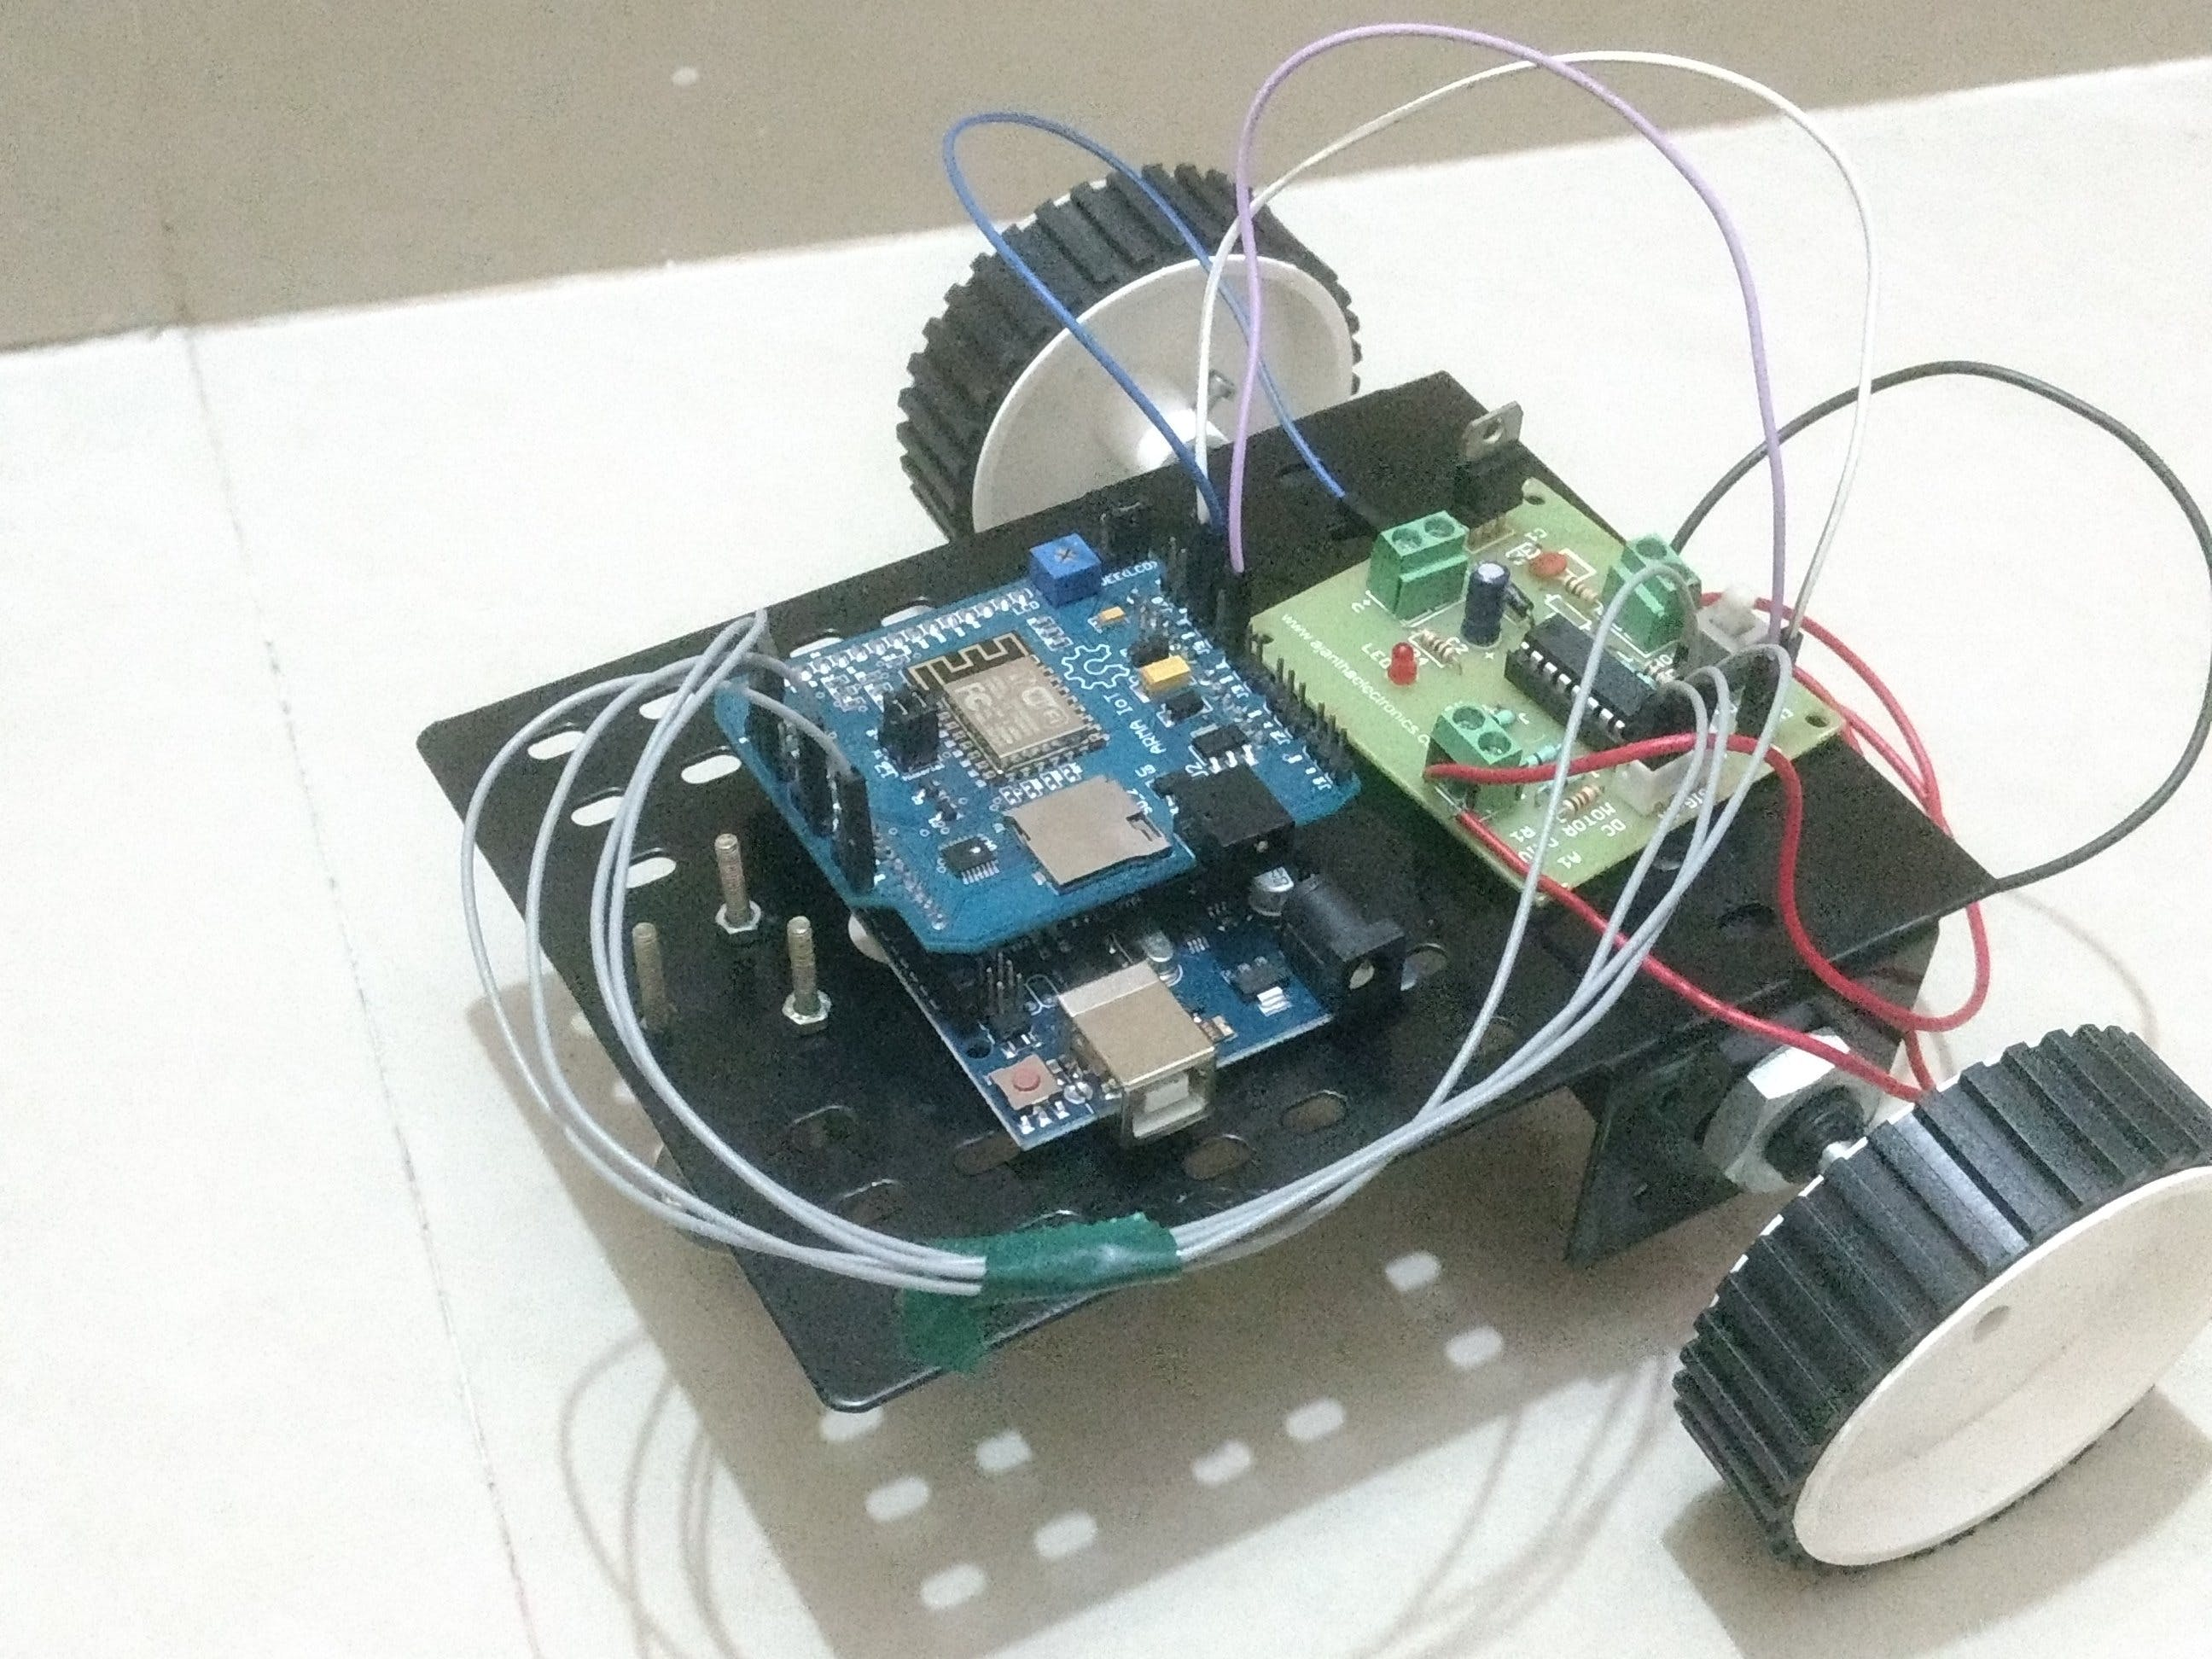 WiFi Controlled Robot using Arduino UNO and Blynk